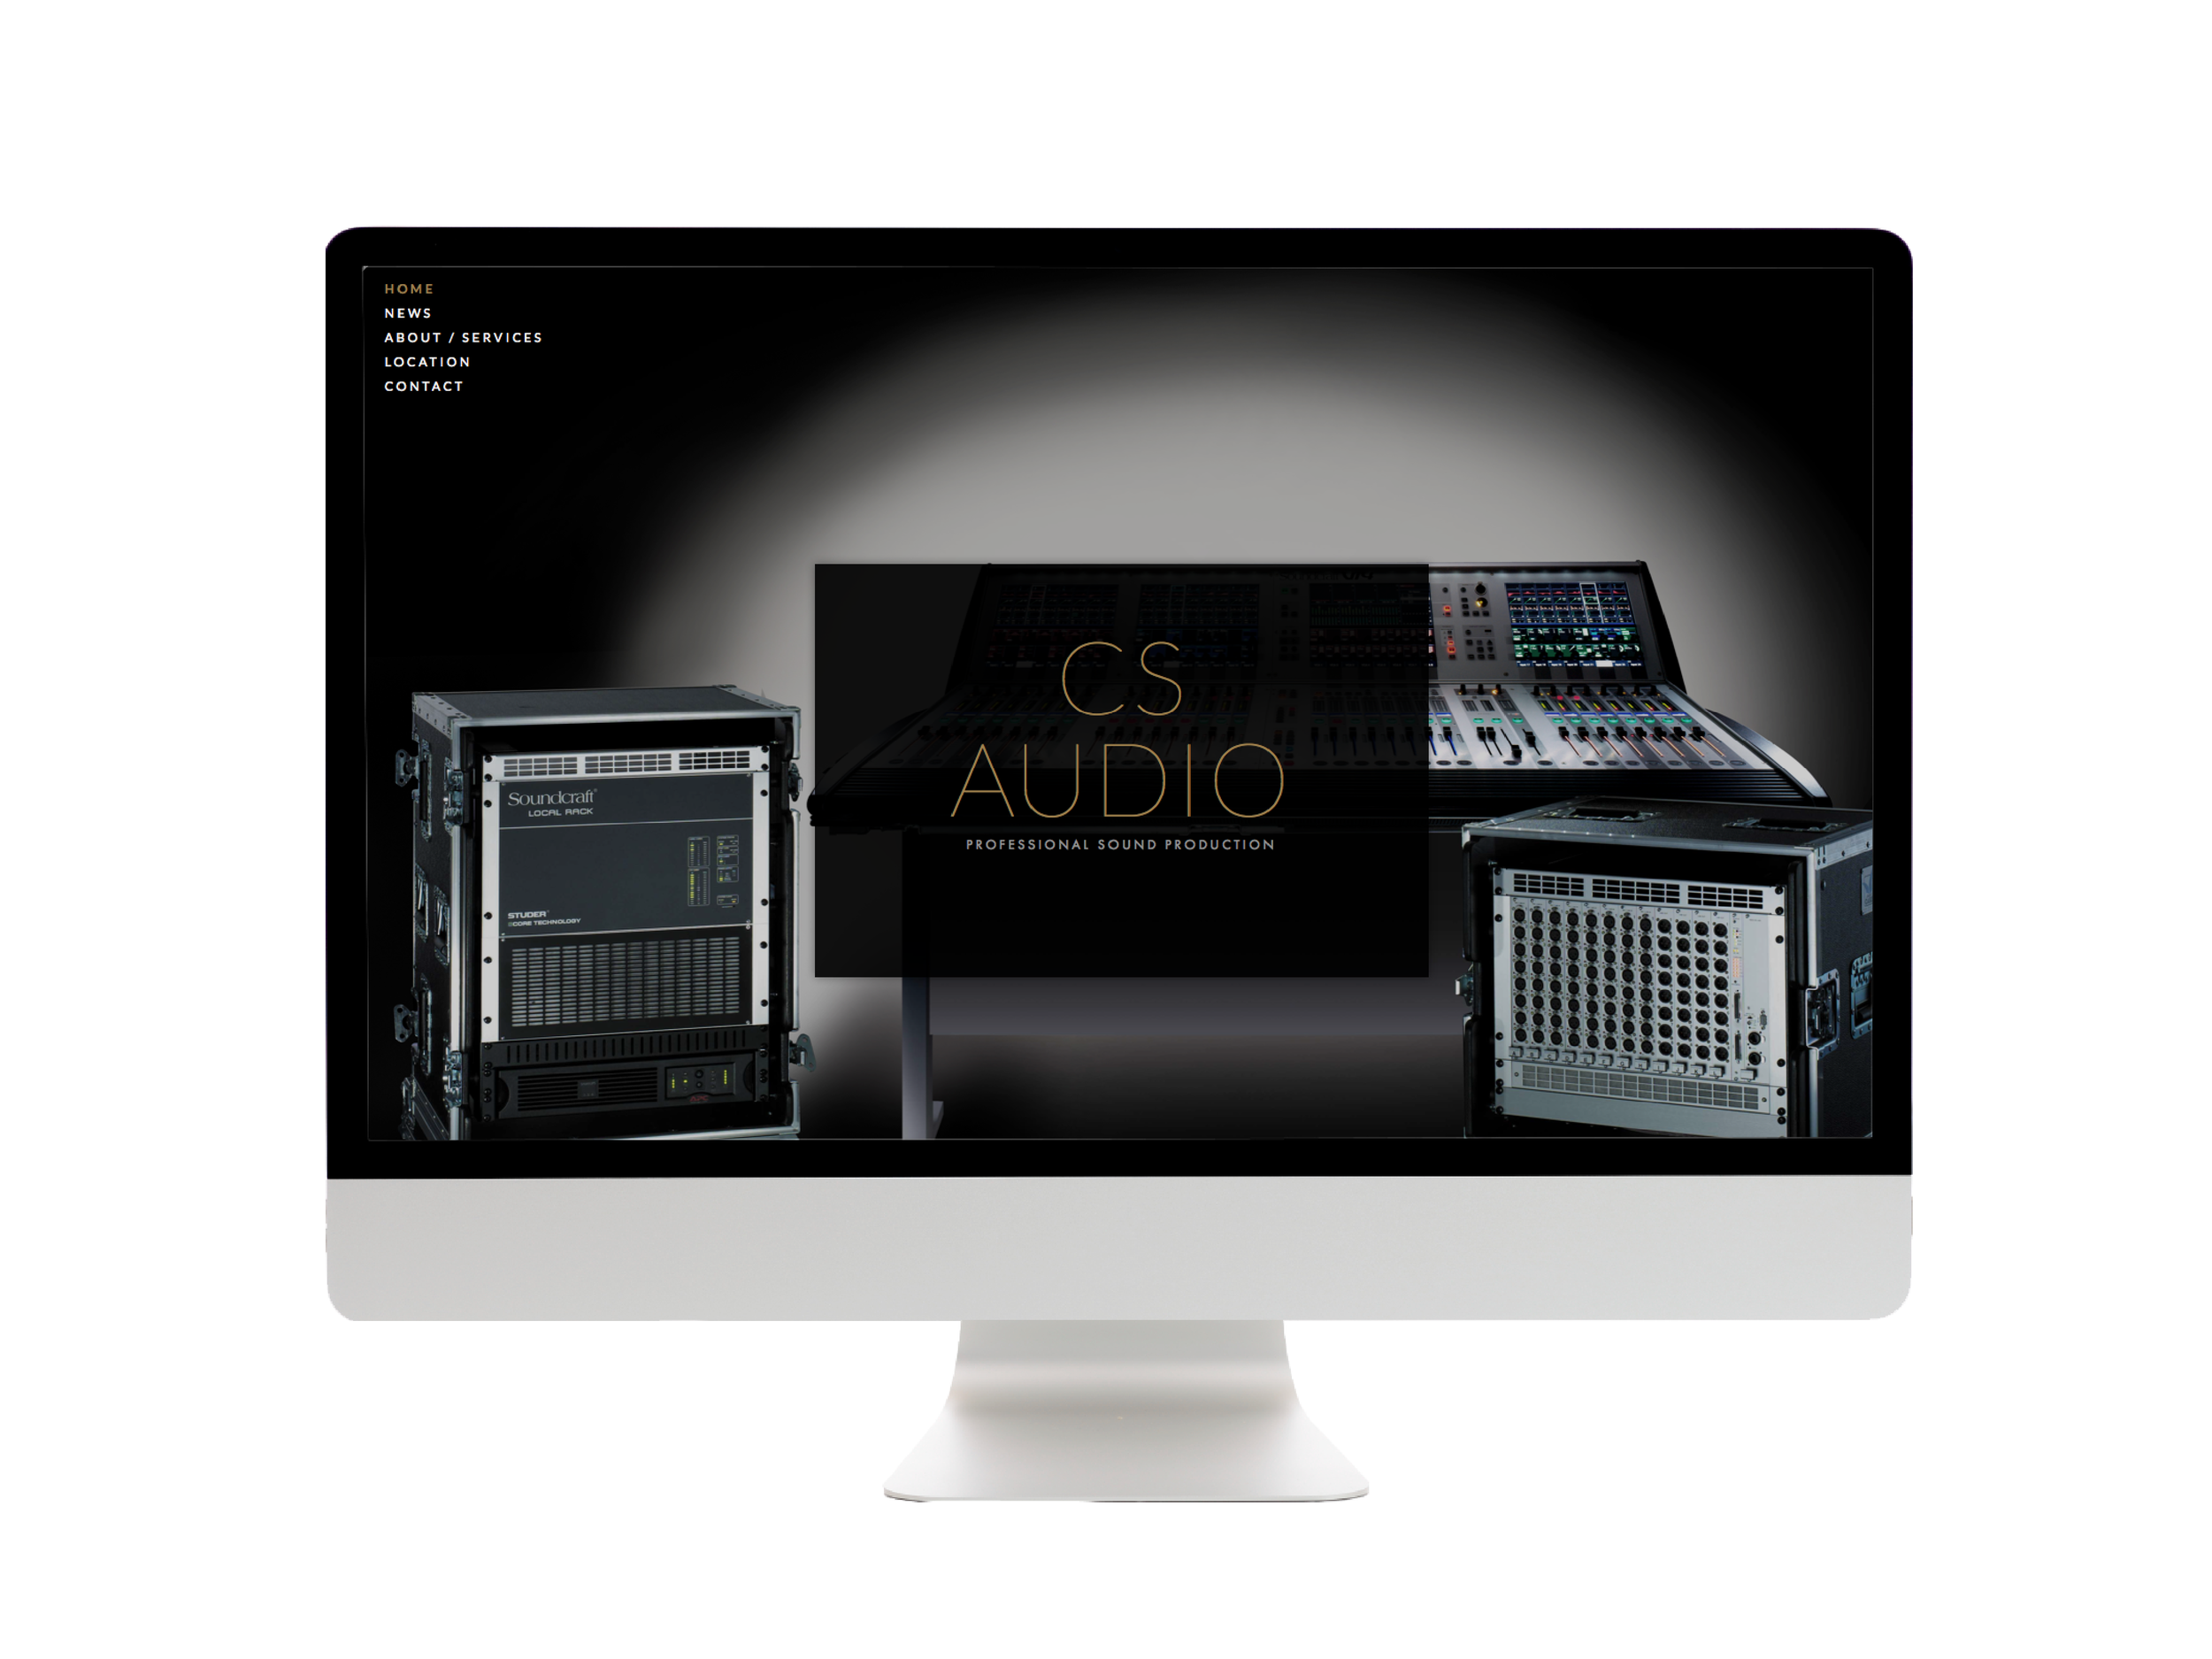 www.csaudio.co.uk